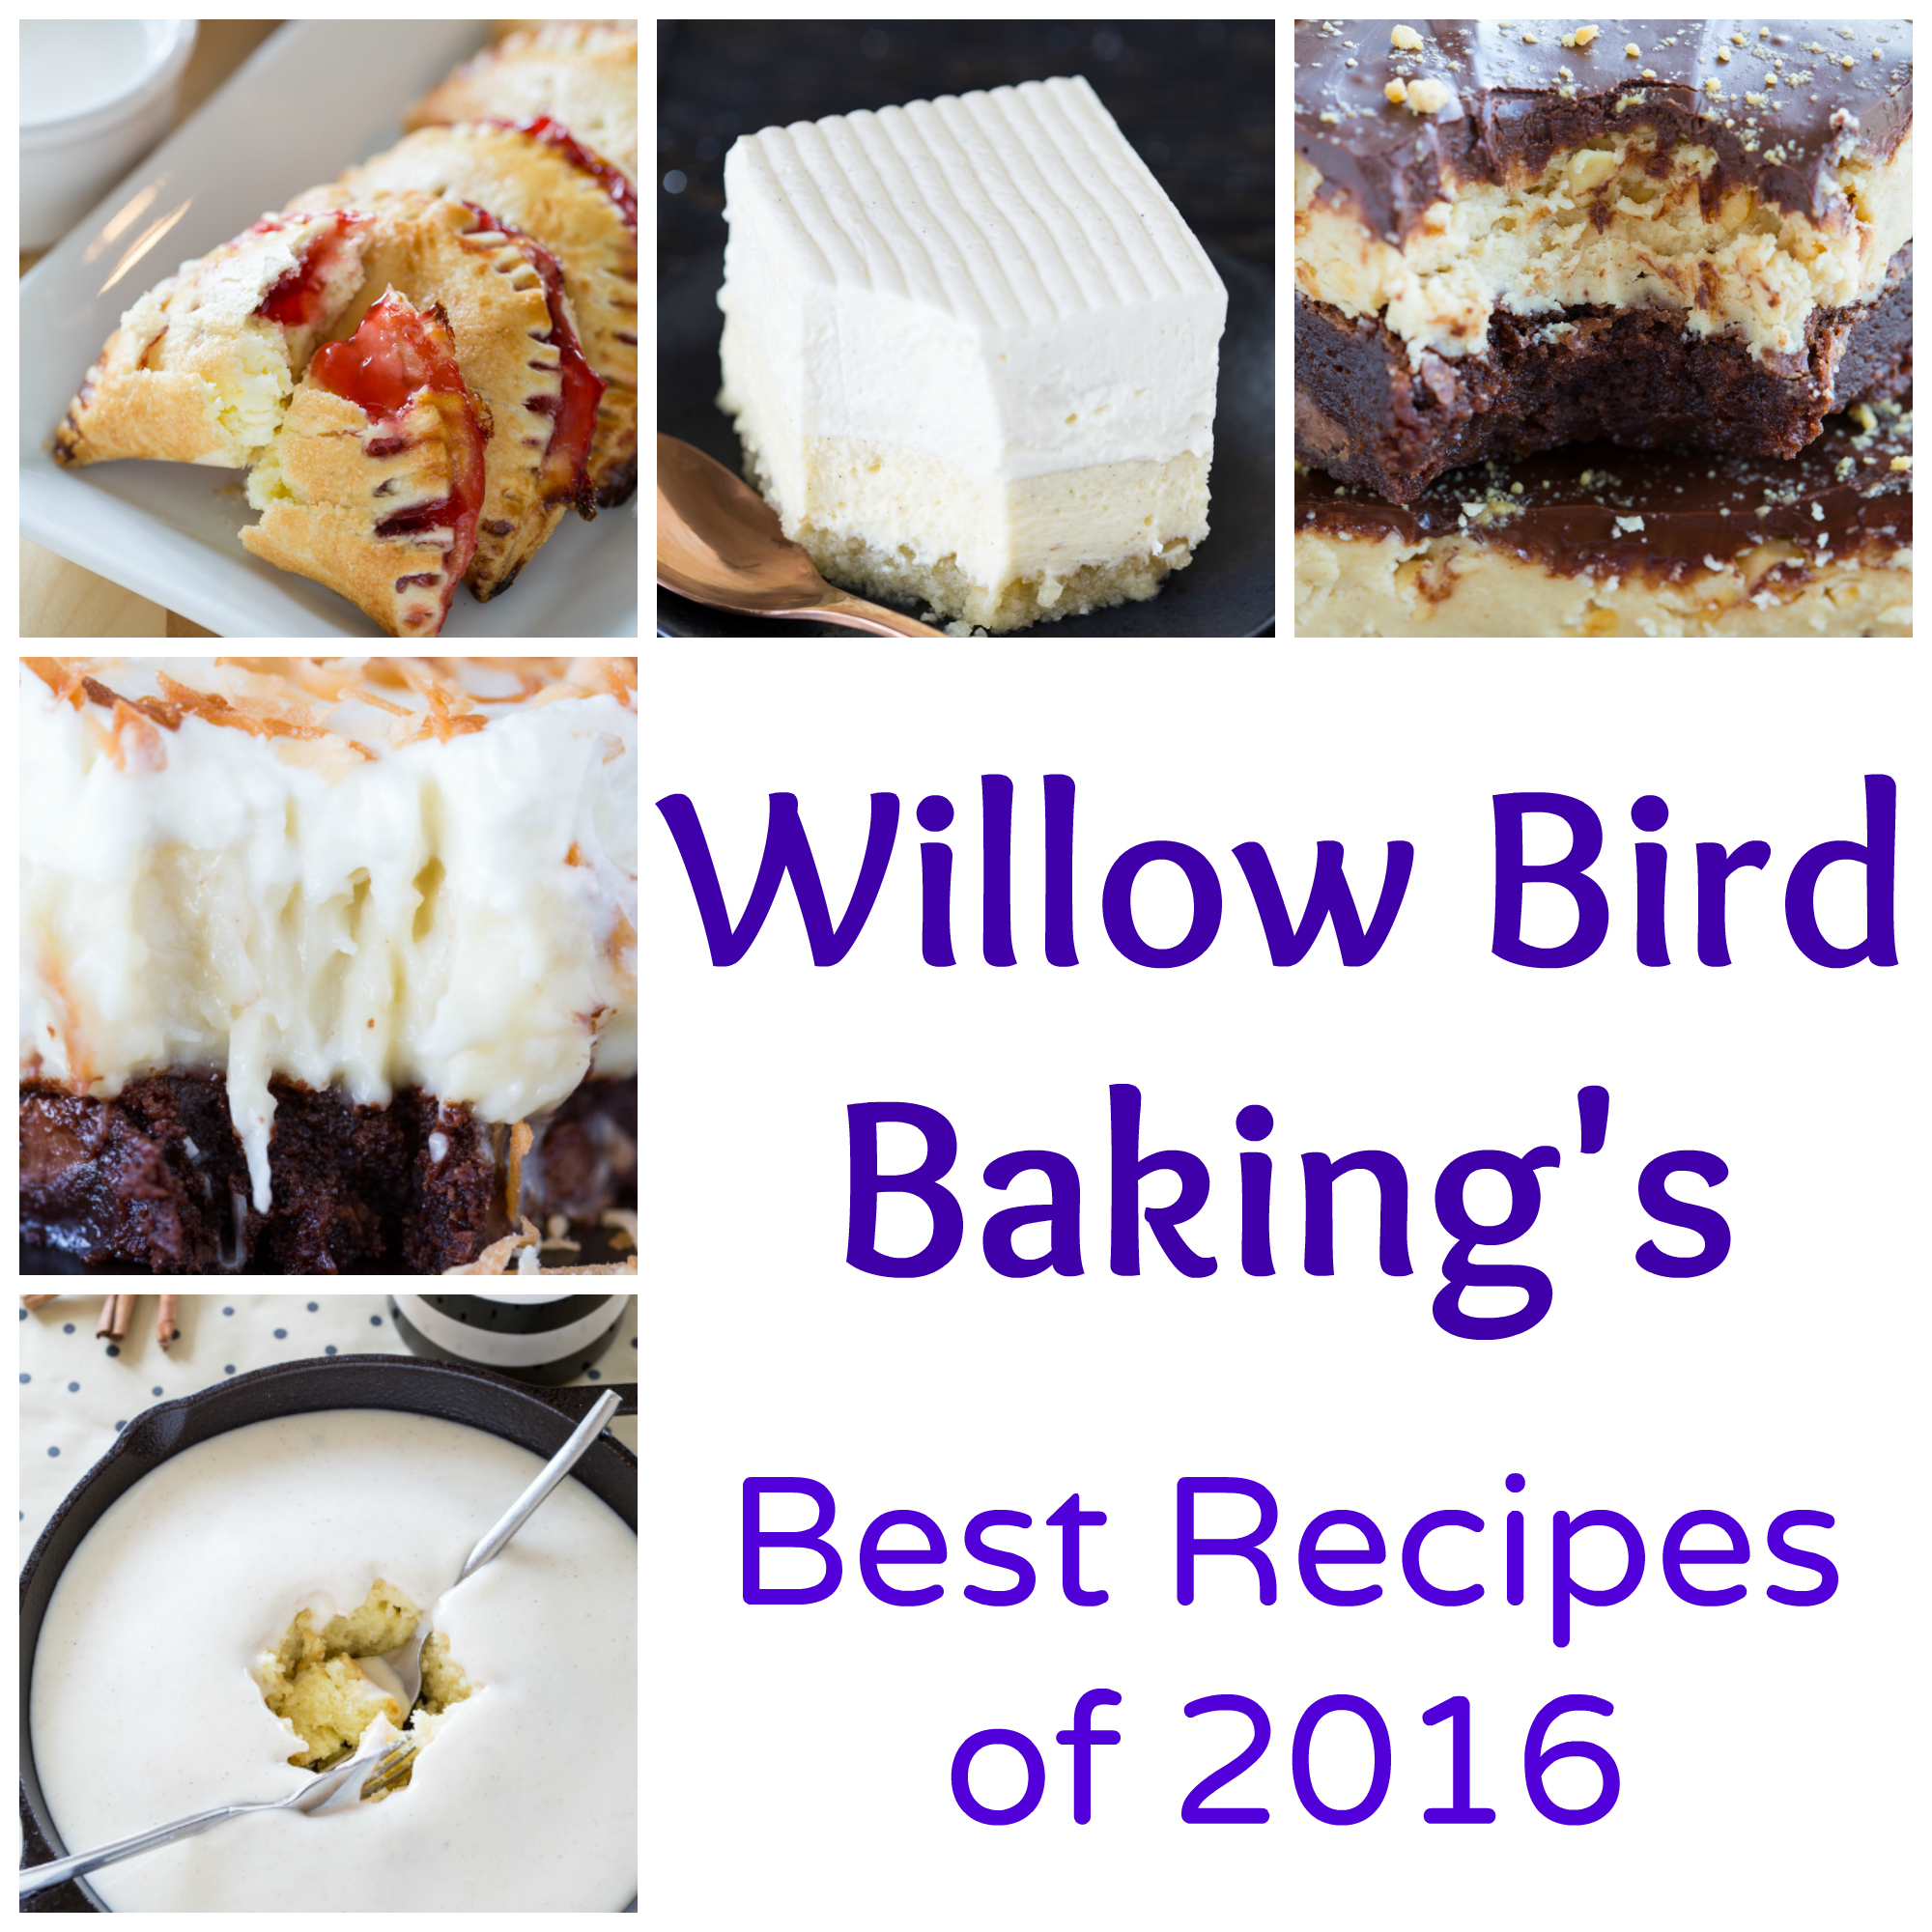 Willow Bird Baking's Best Recipes of 2016